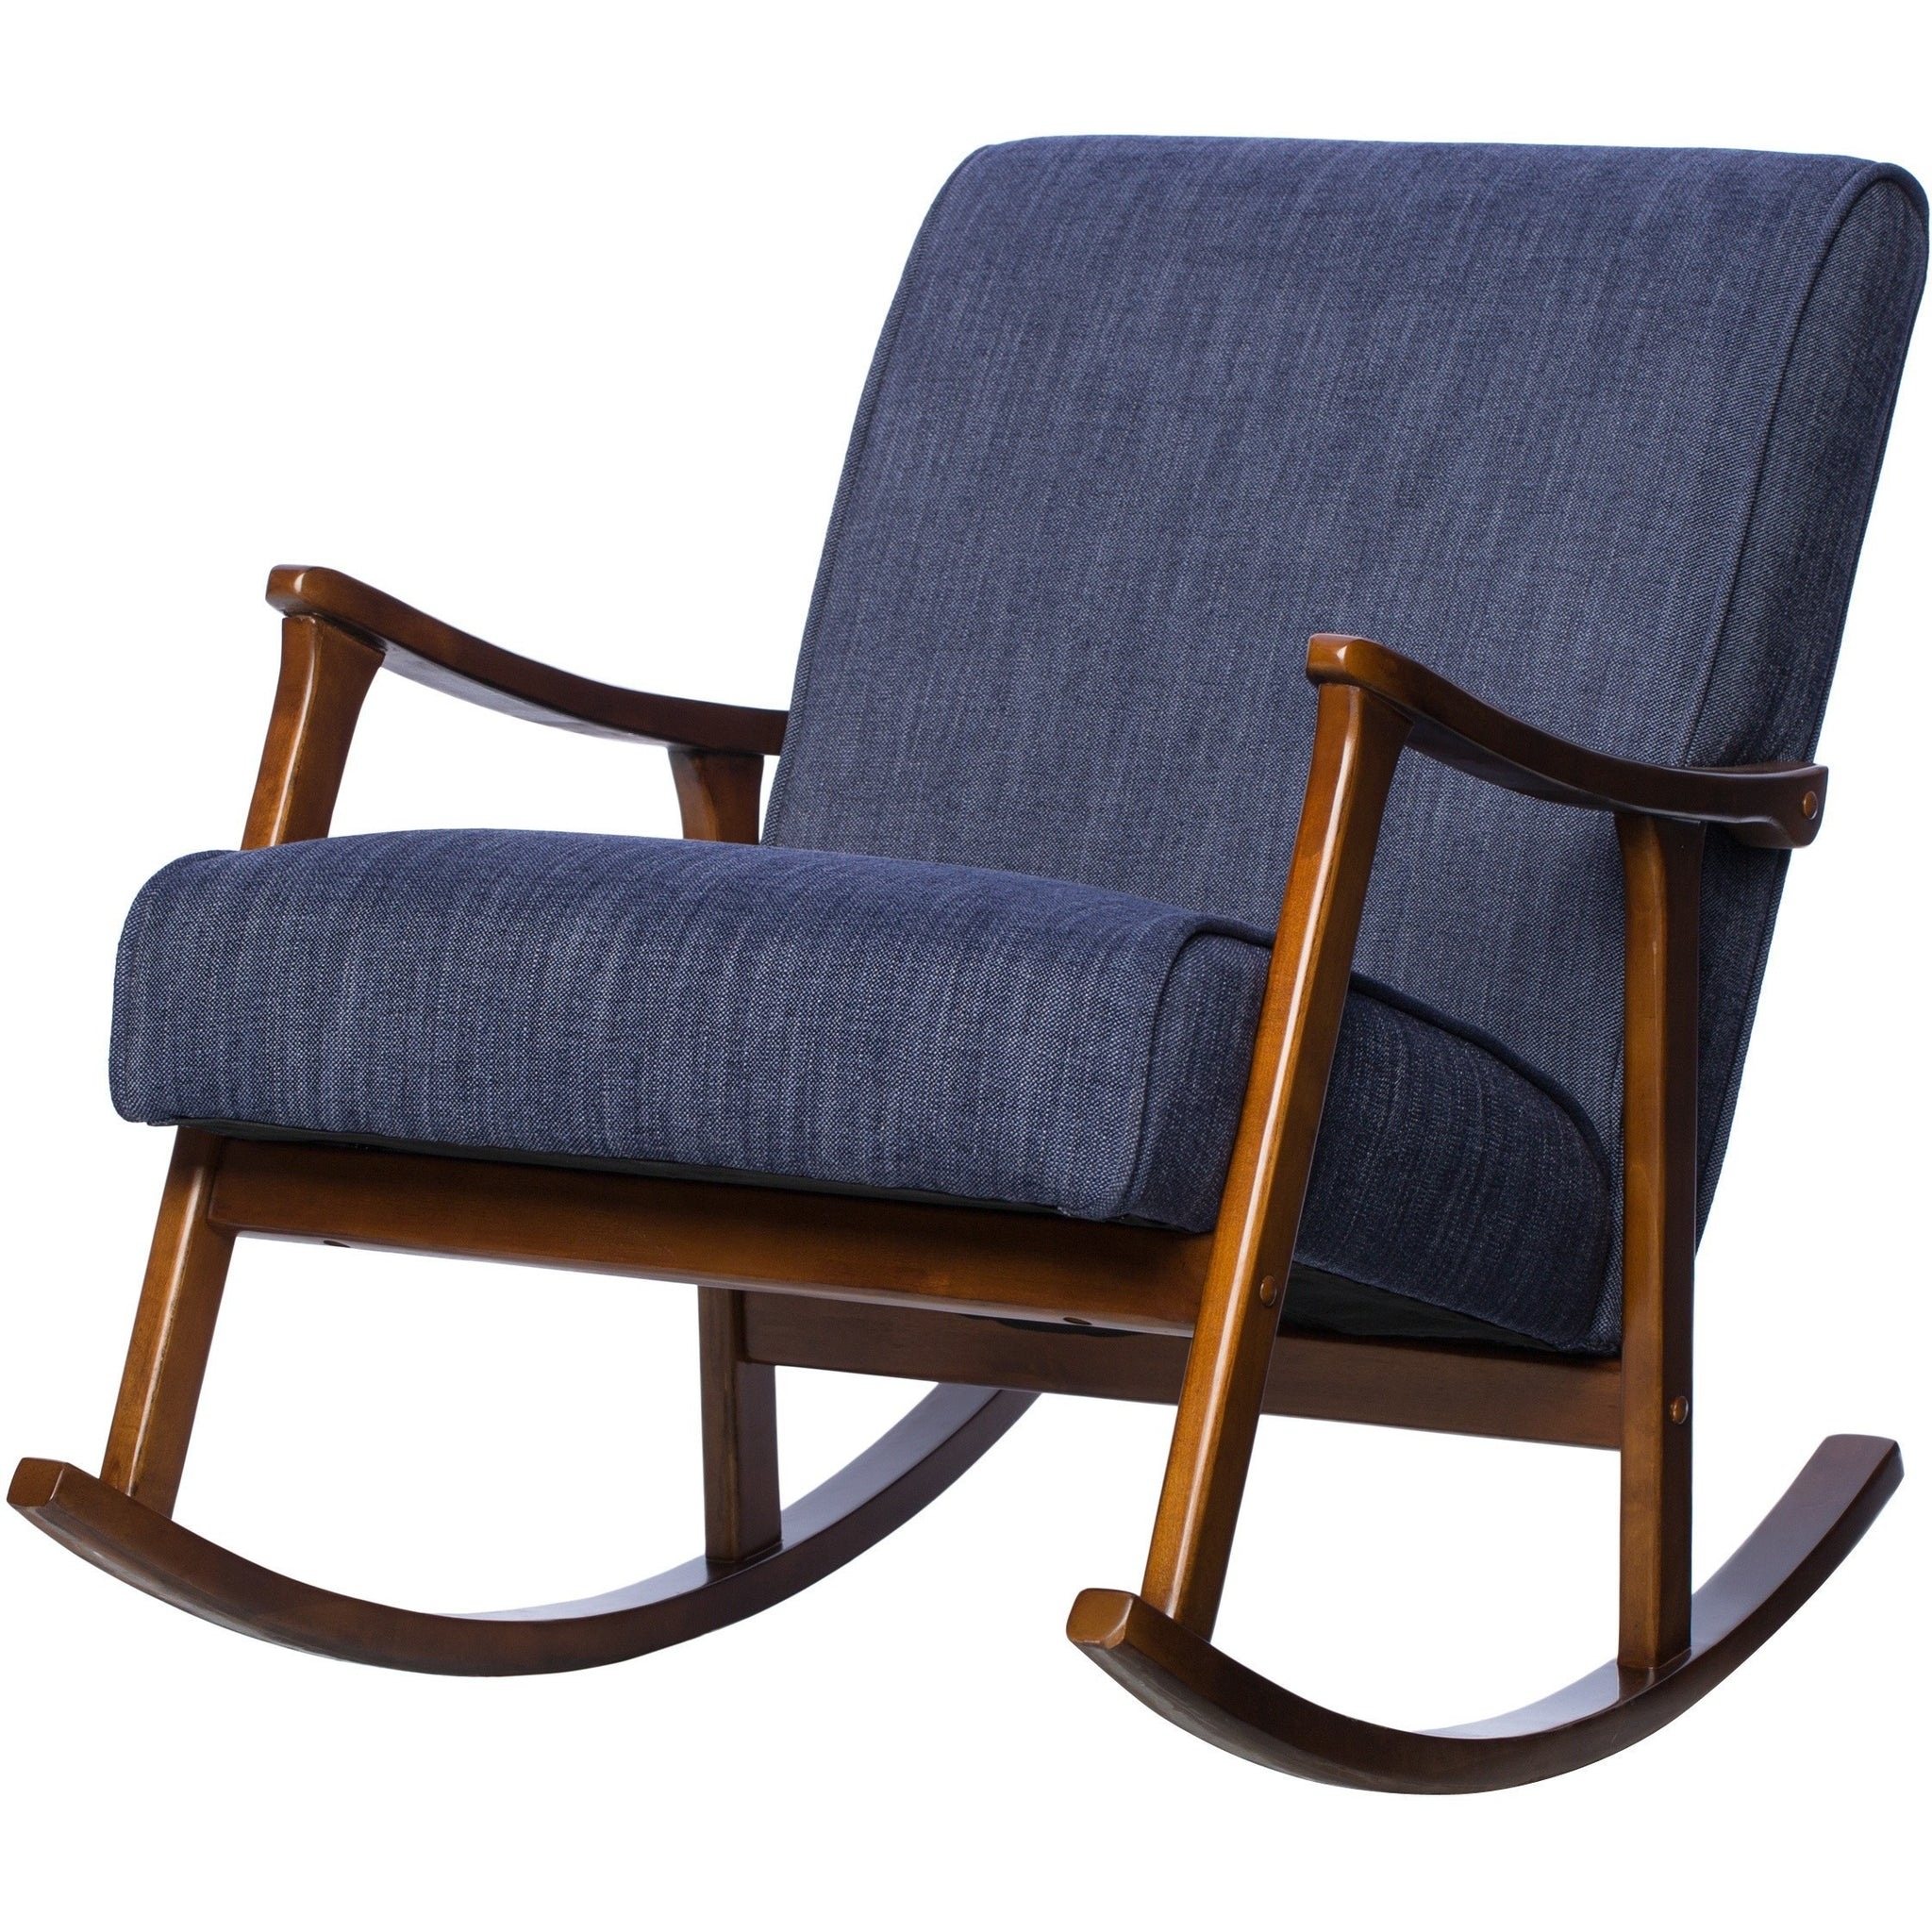 wooden rocking chair. Violet Upholstered Wooden Rocking Chair Y